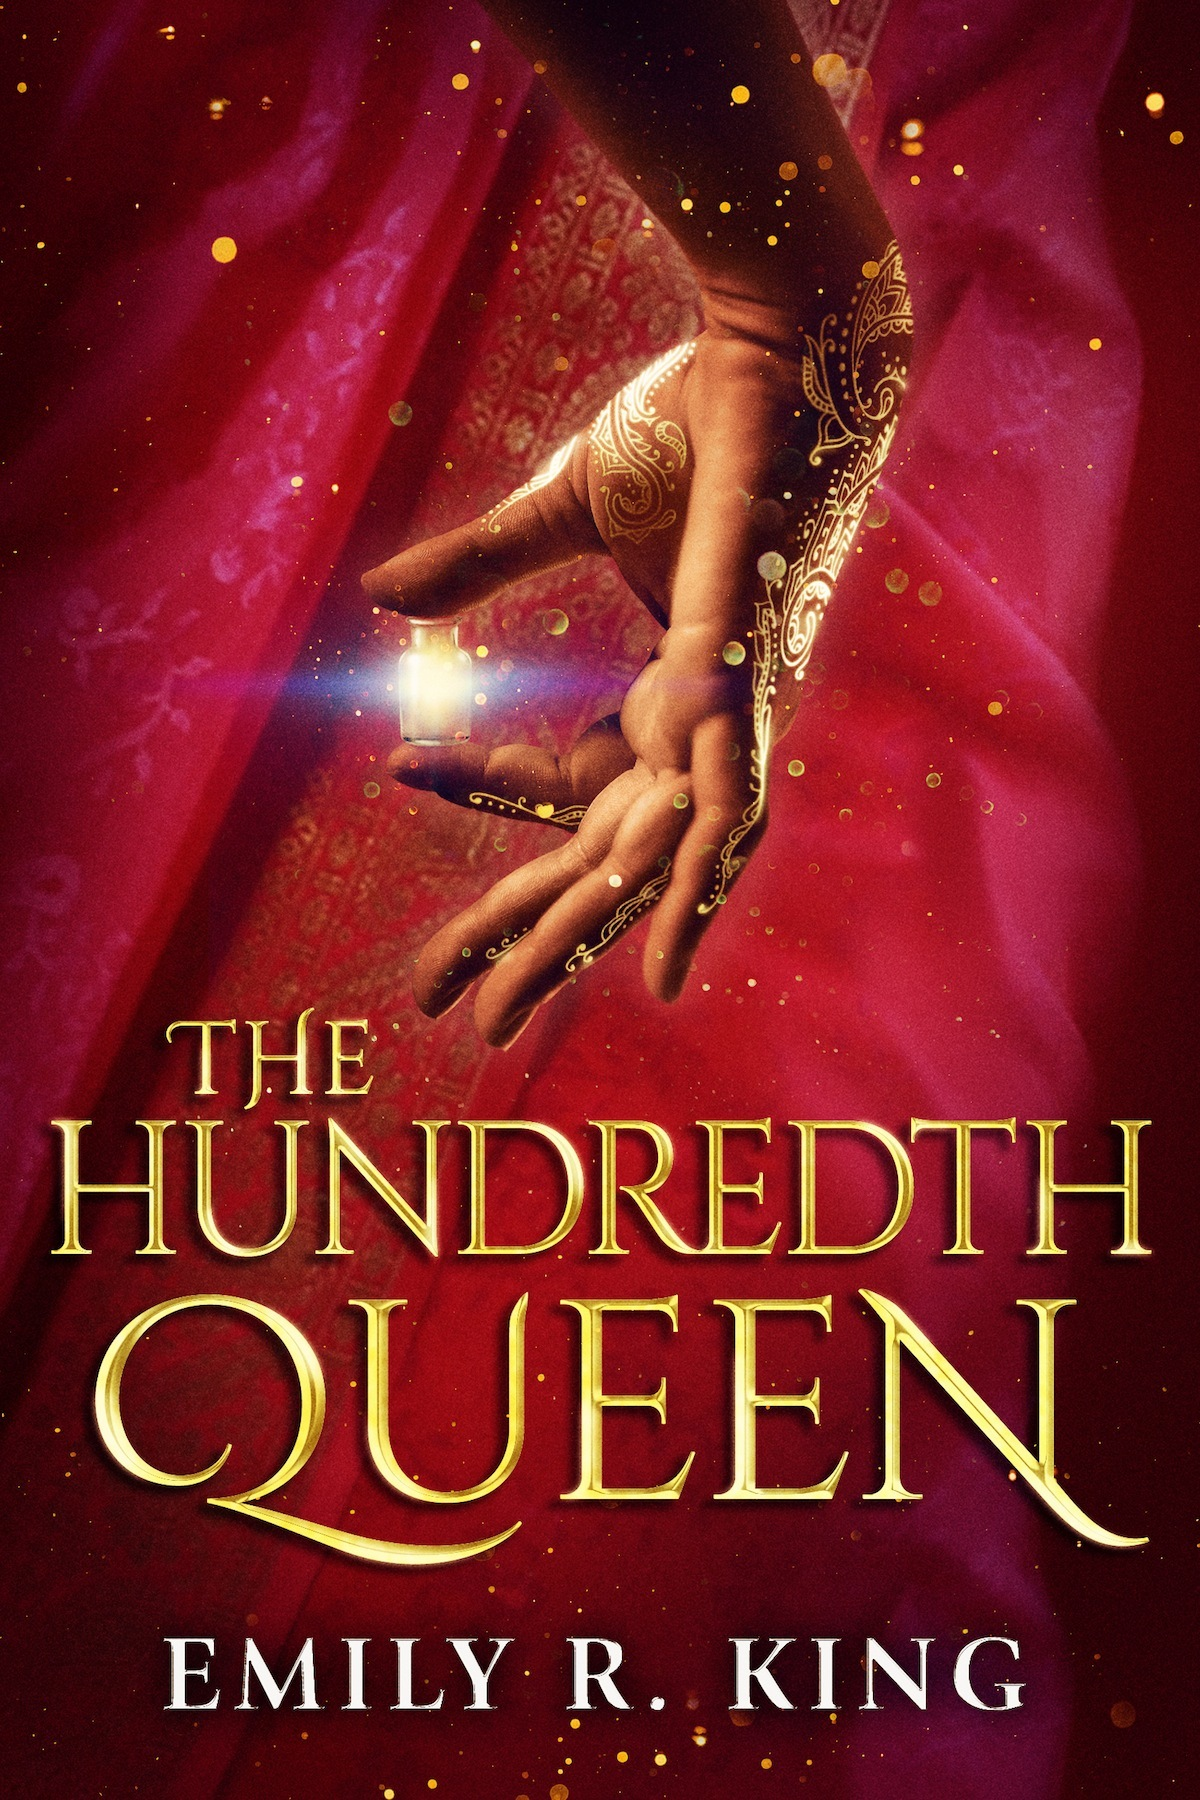 (The Hundredth Queen 1) King, Emily R - The Hundredth Queen